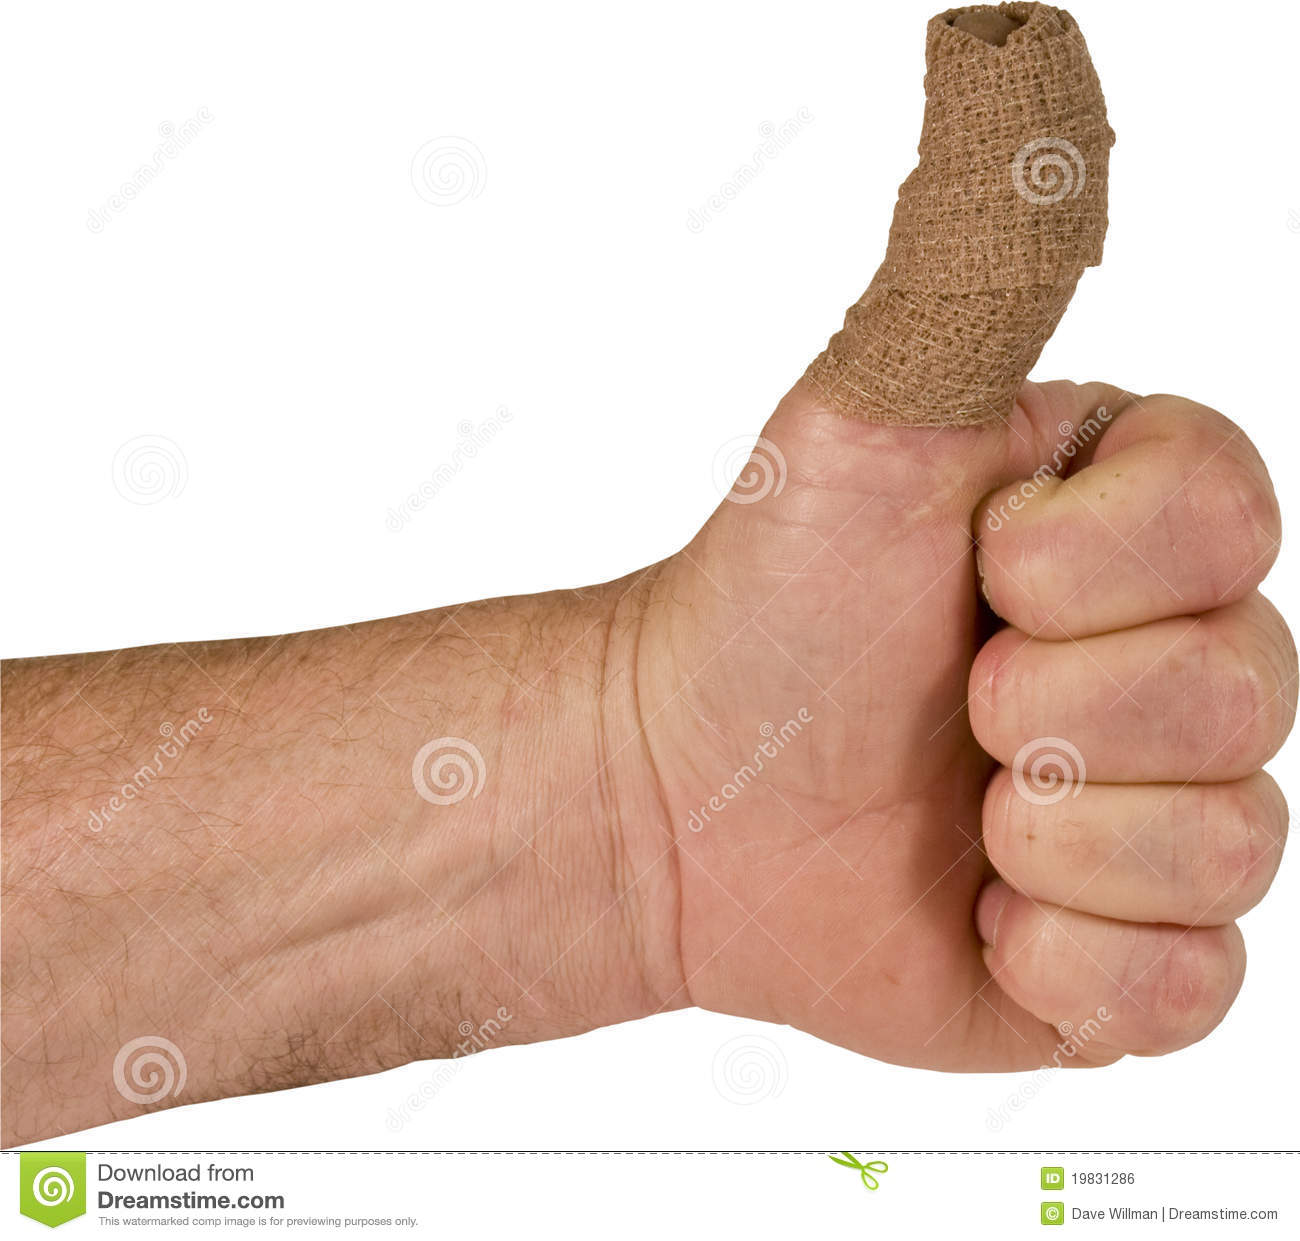 Thumb up position